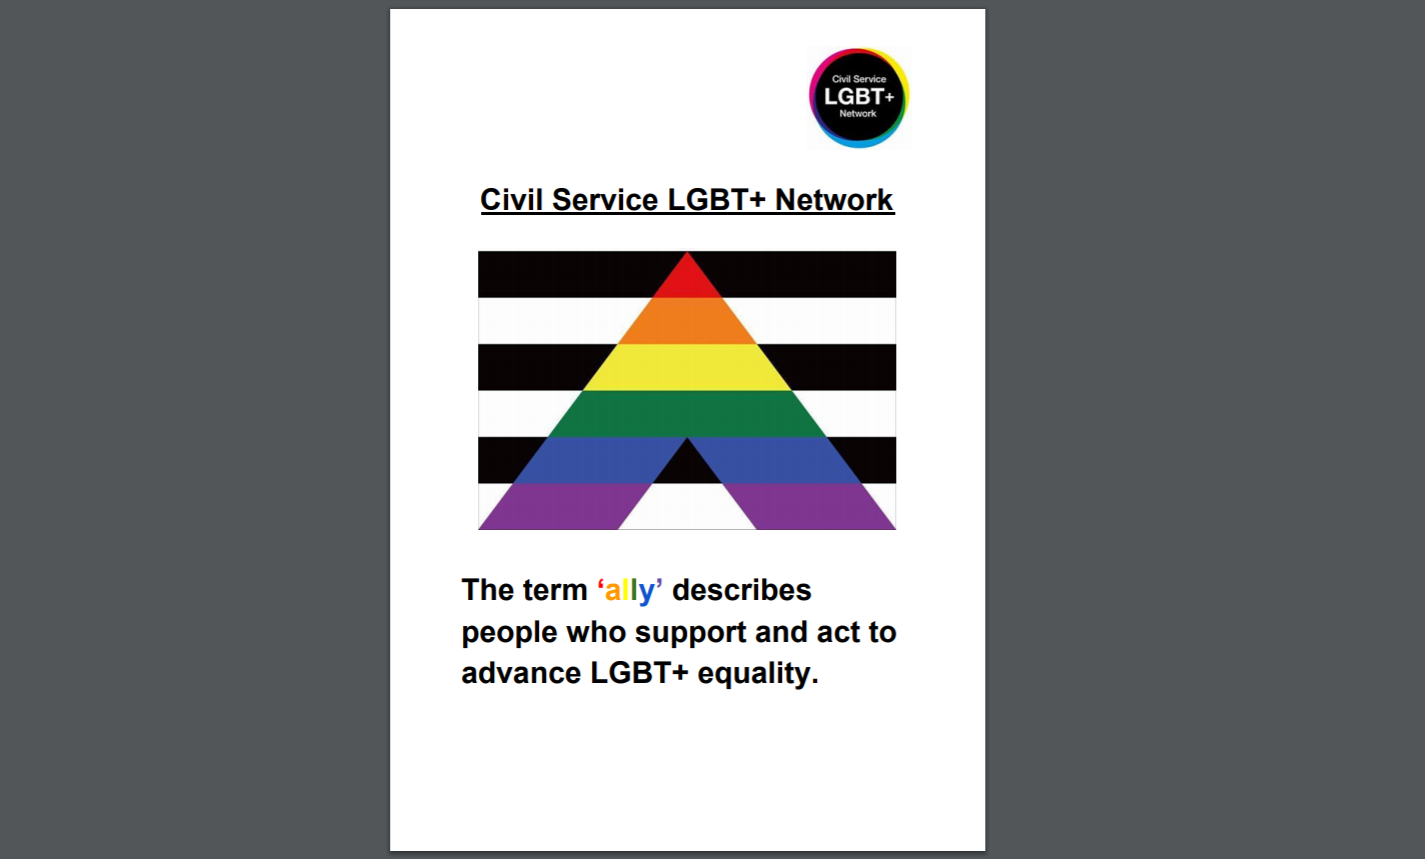 The front cover of the ally resources